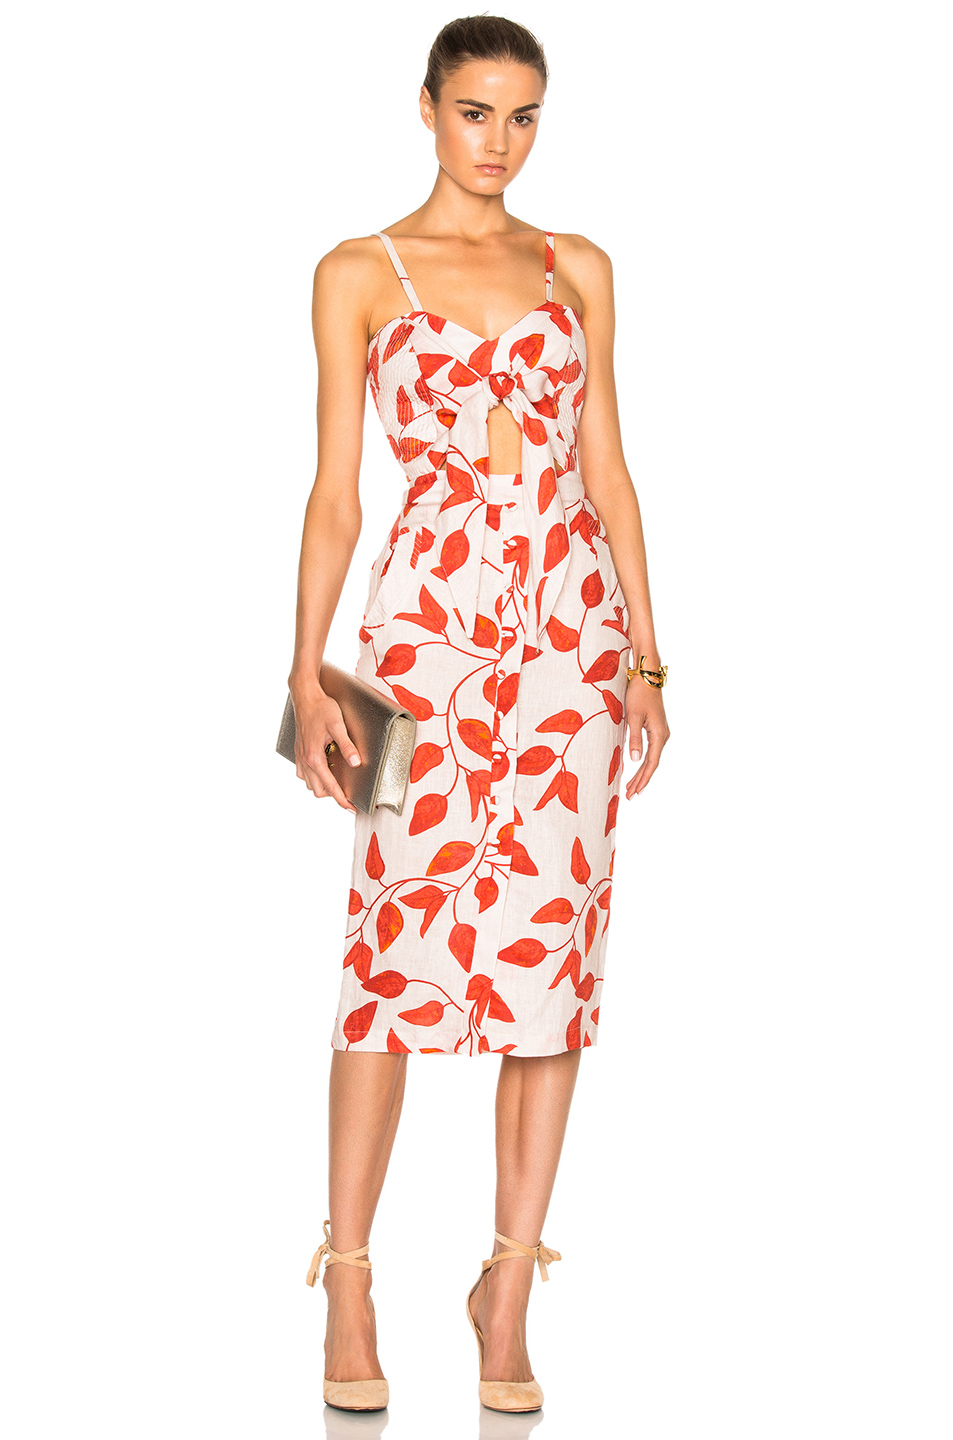 JOHANNA ORTIZ Leaf-Print Linen Tie-Front Cami Dress, Red/White at FORWARD